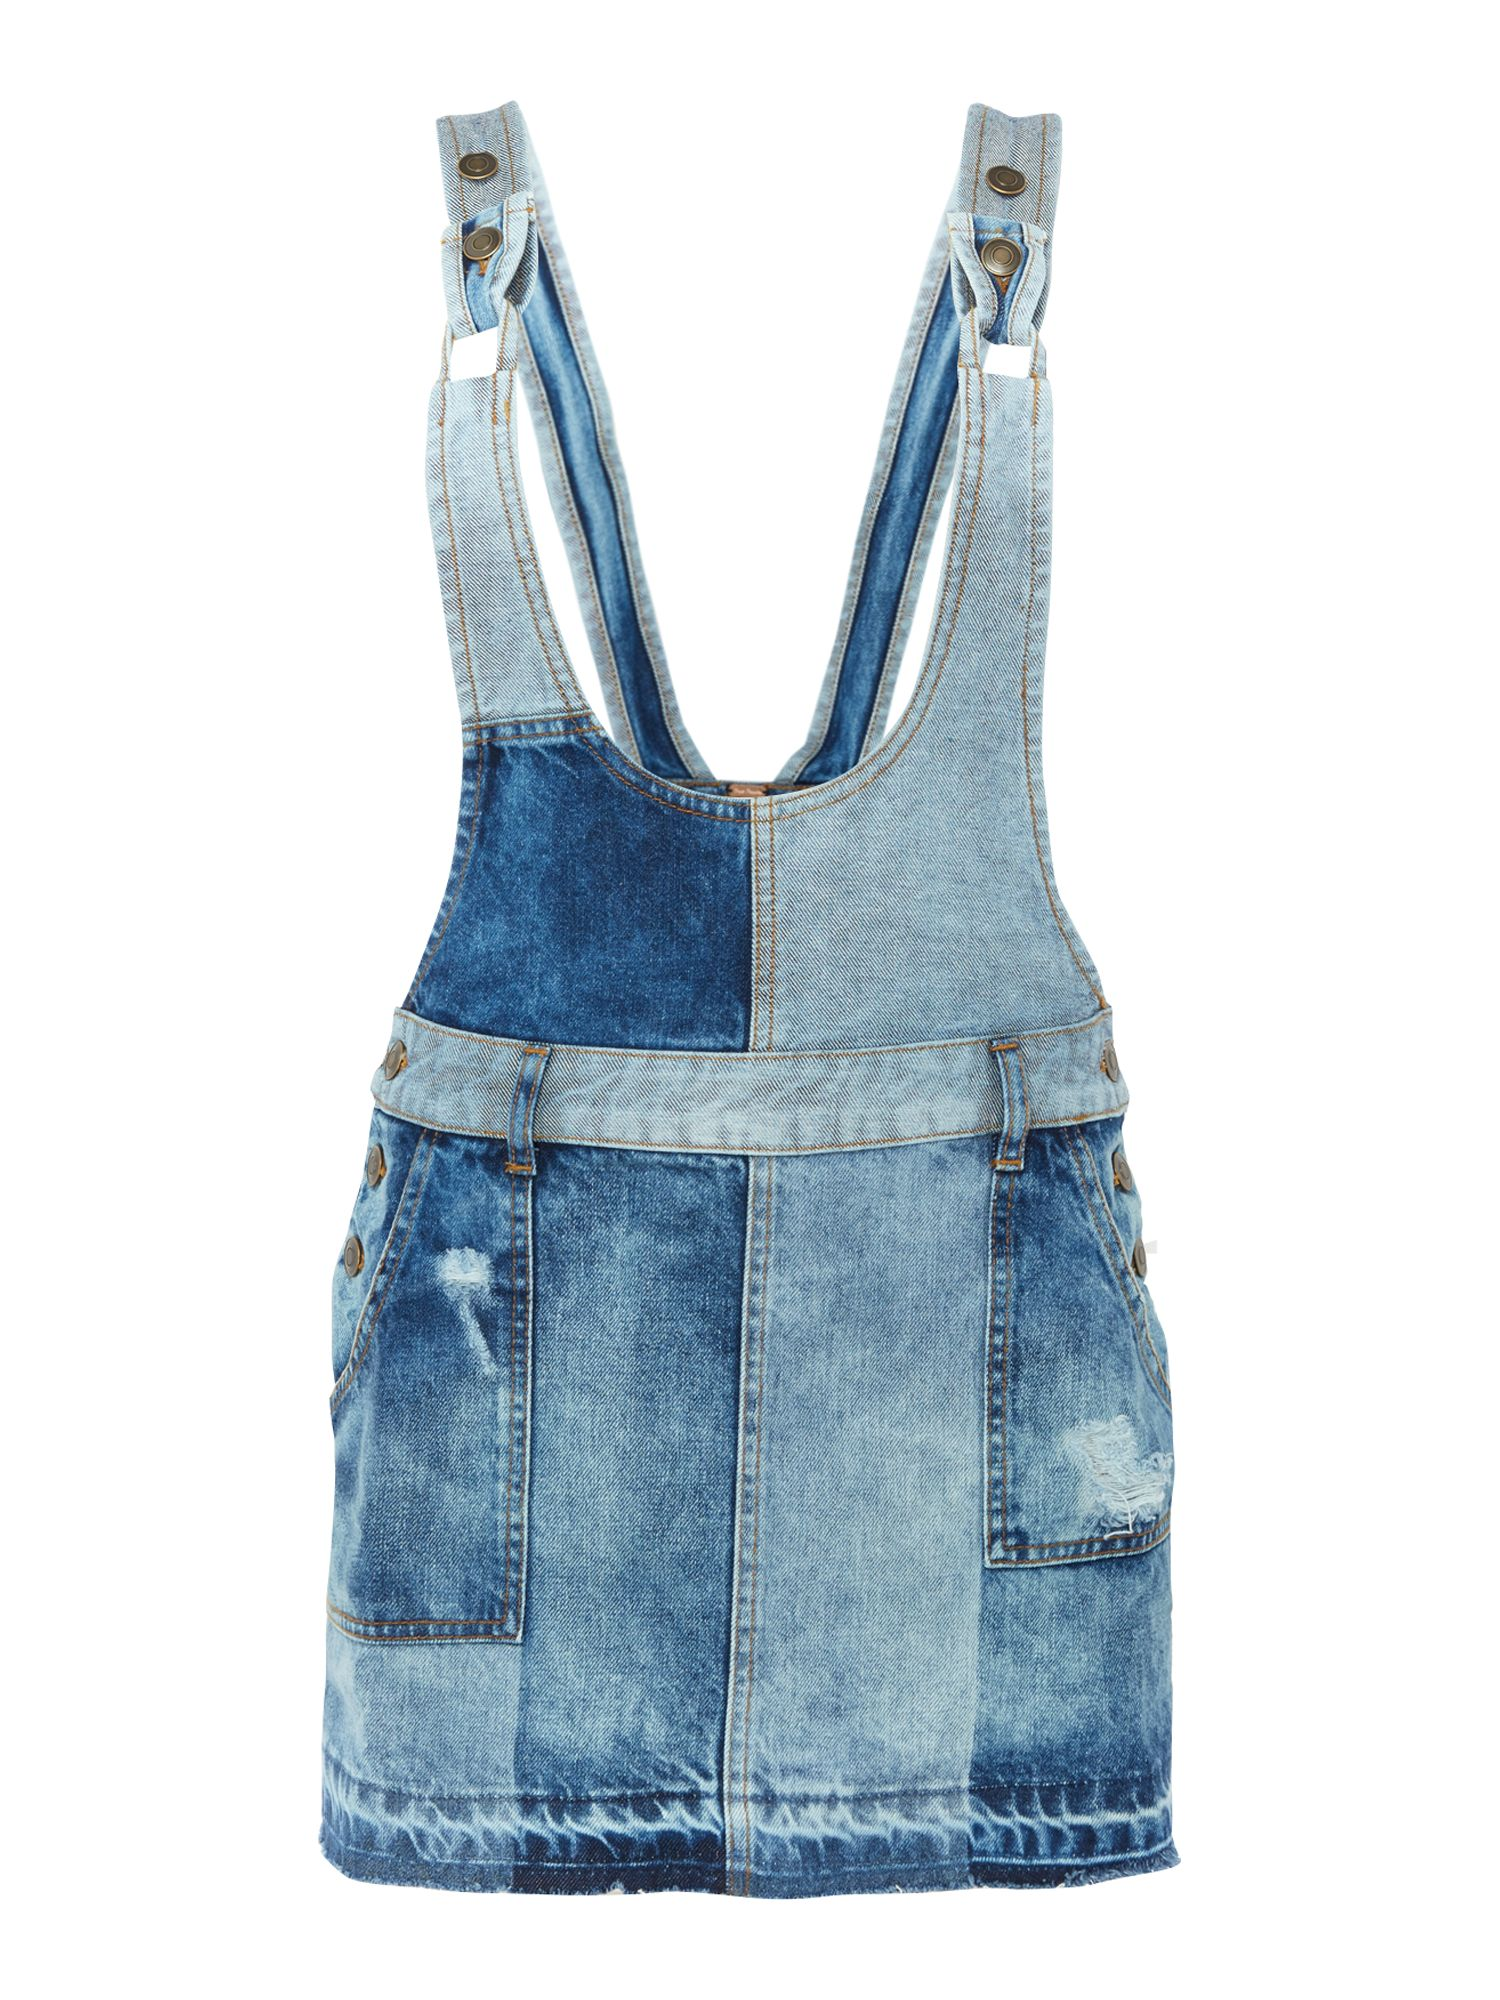 Free People Patchwork Dungaree Dress in denim light wash Denim Light Wash